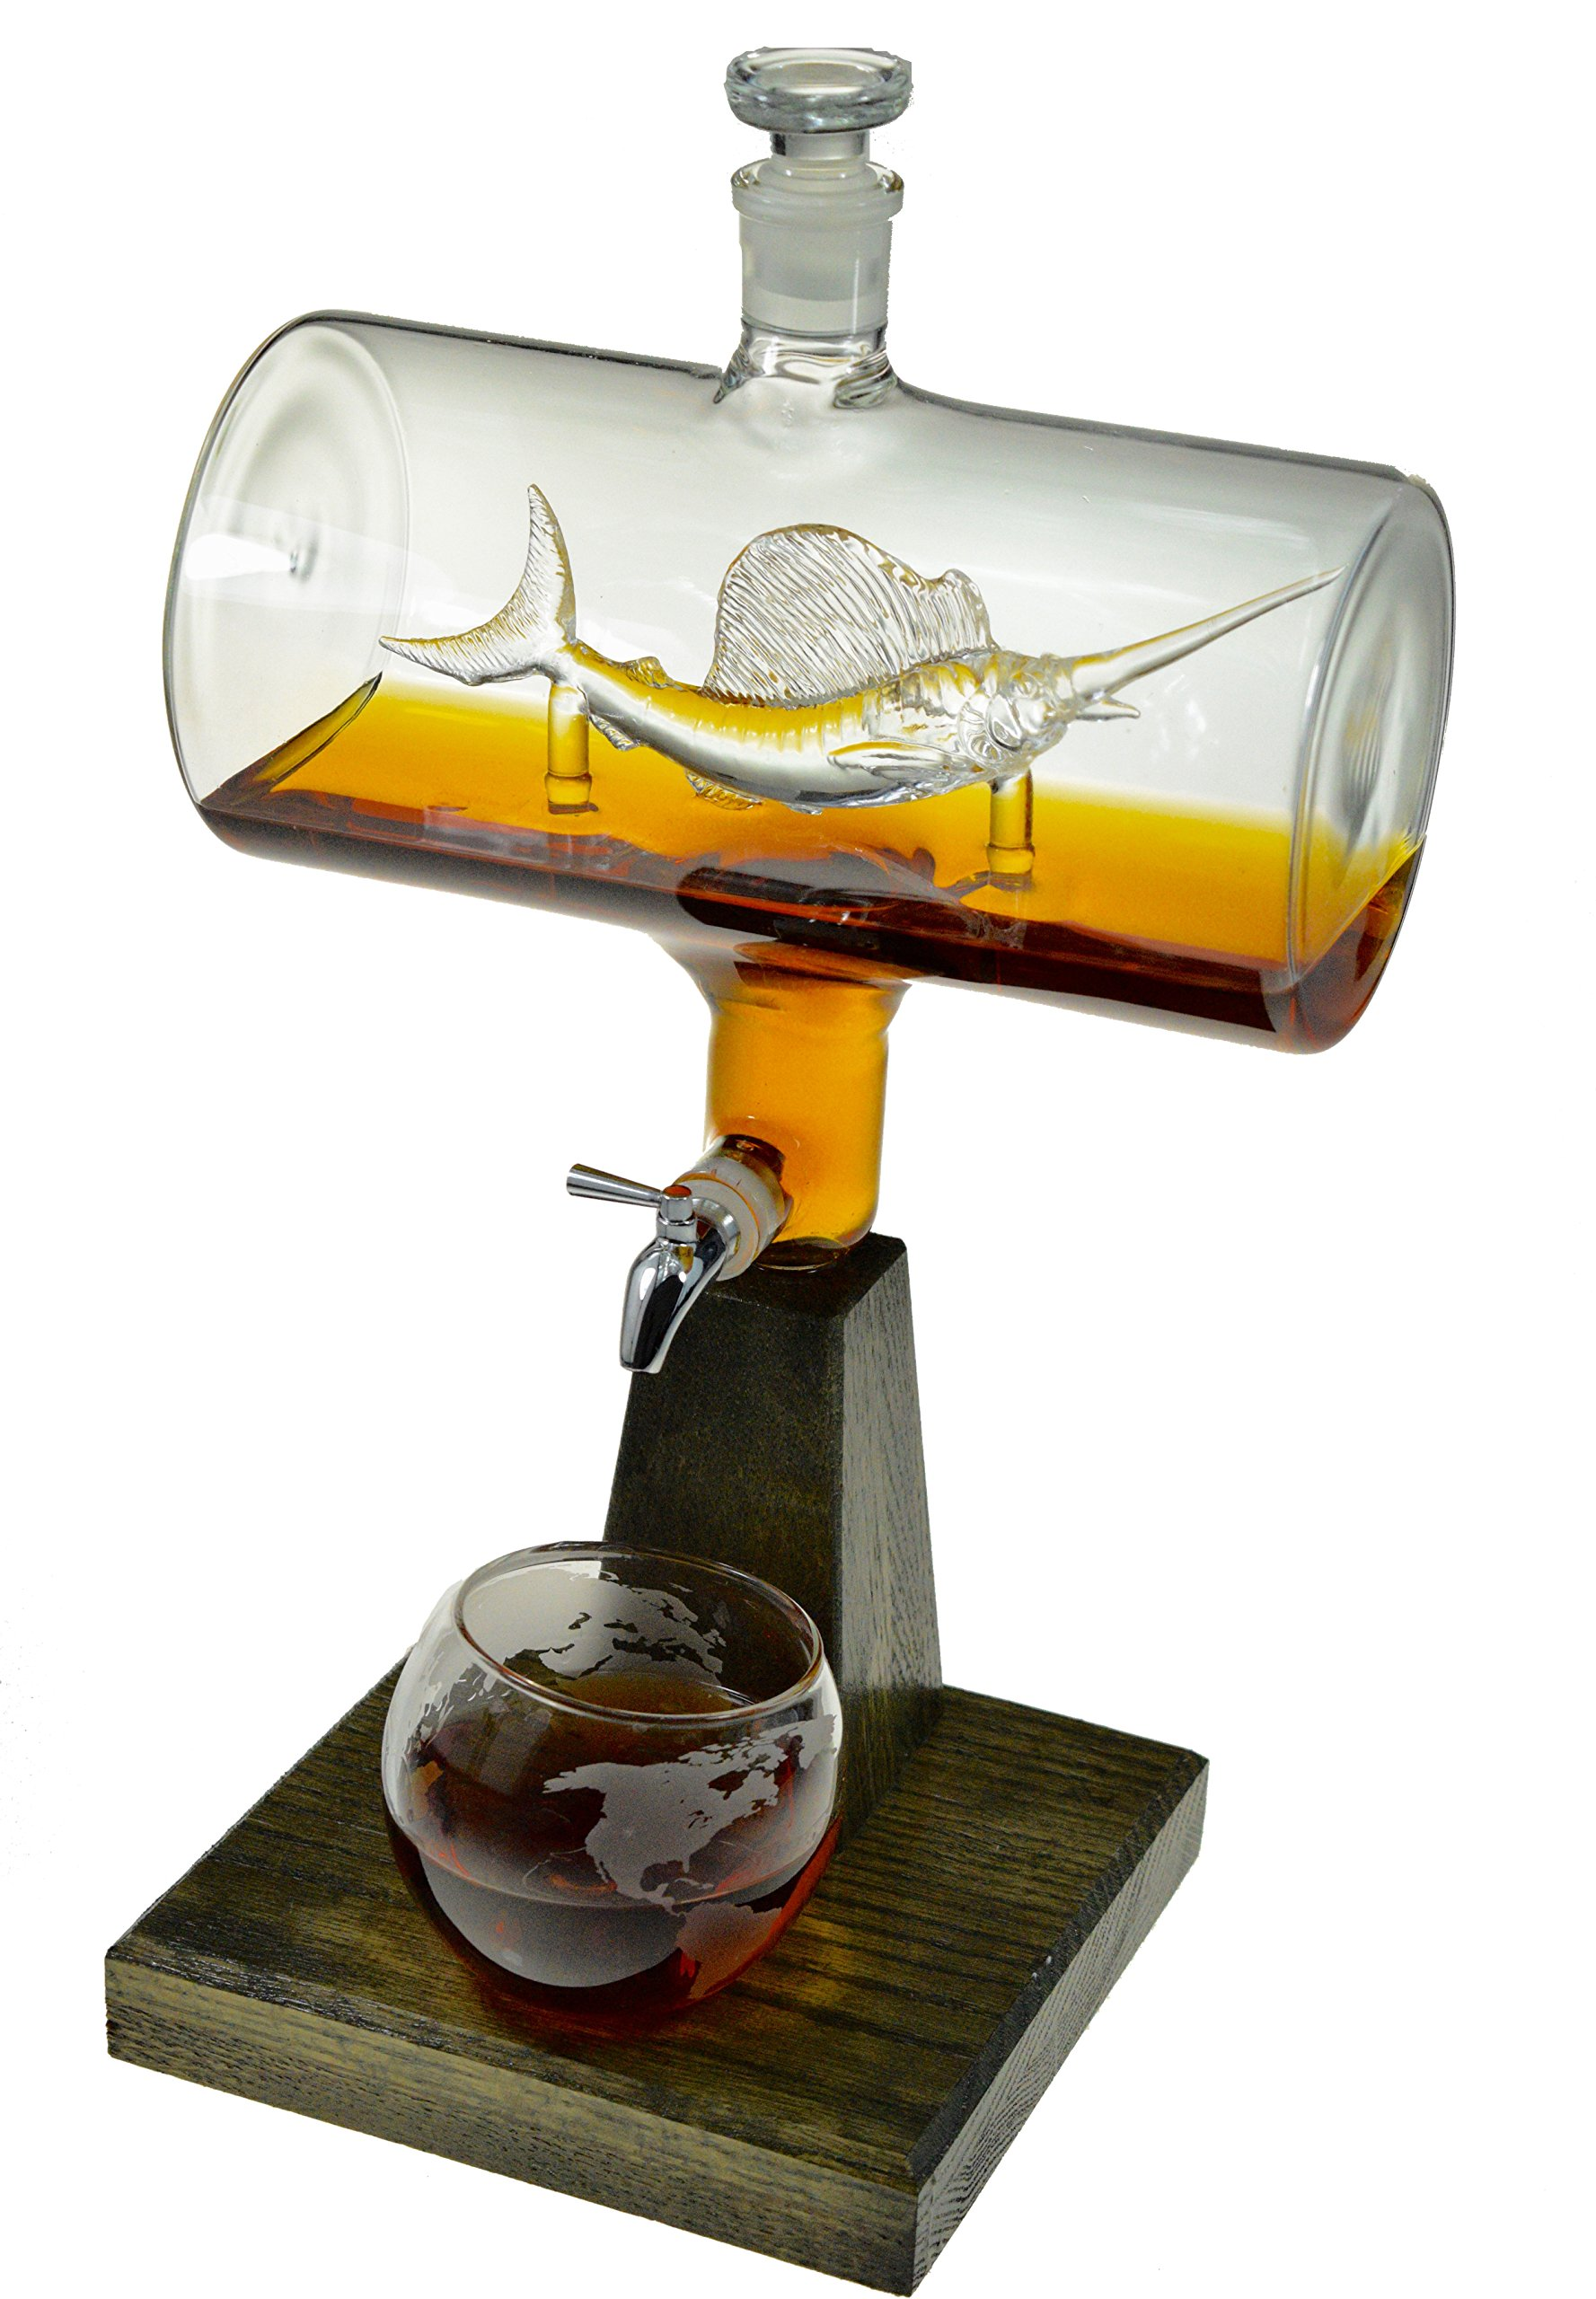 2500ml Whiskey Decanter with Sailfish Inside by Prestige Decanters